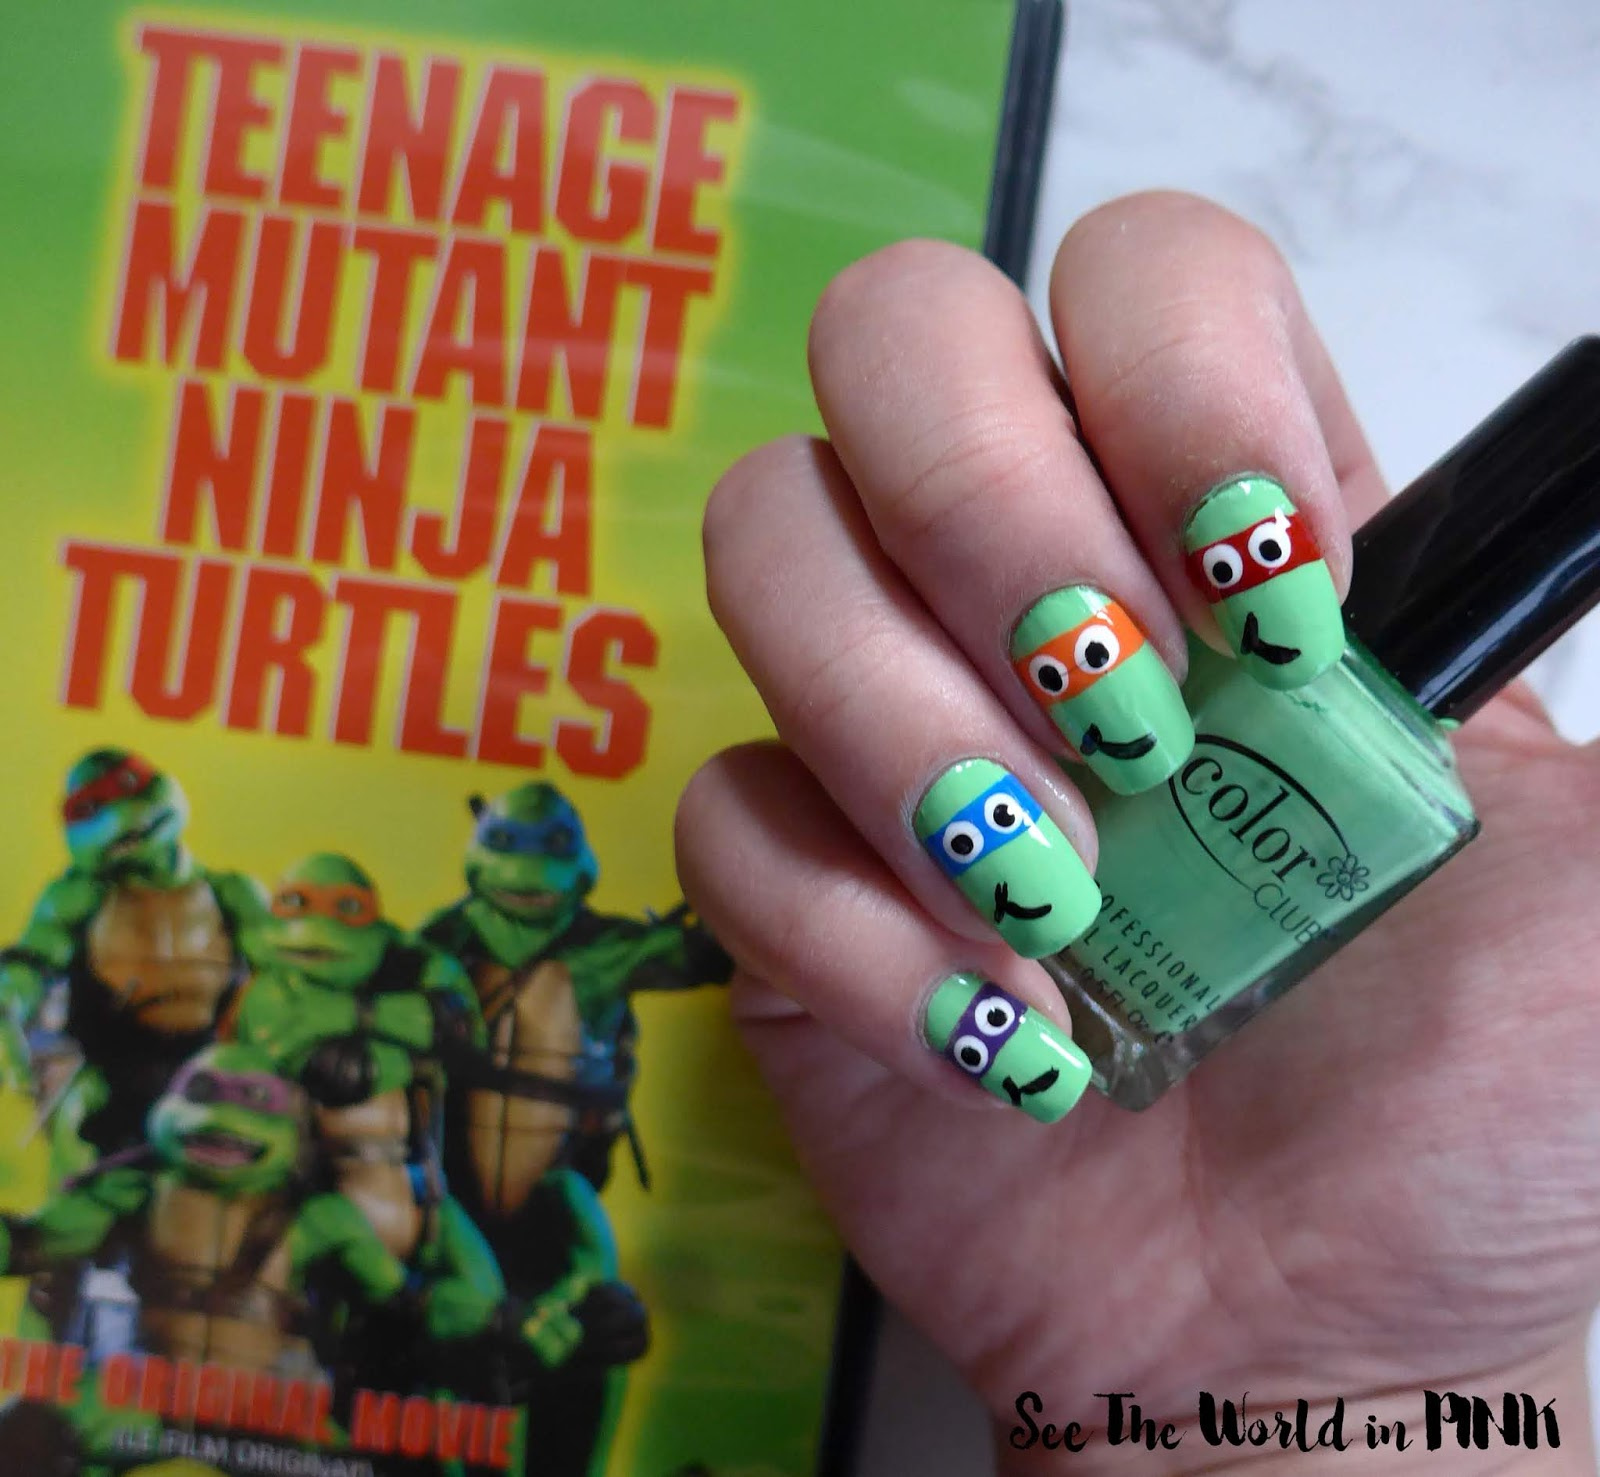 Manicure Monday - Teenage Mutant Ninja Turtle Nail Art!